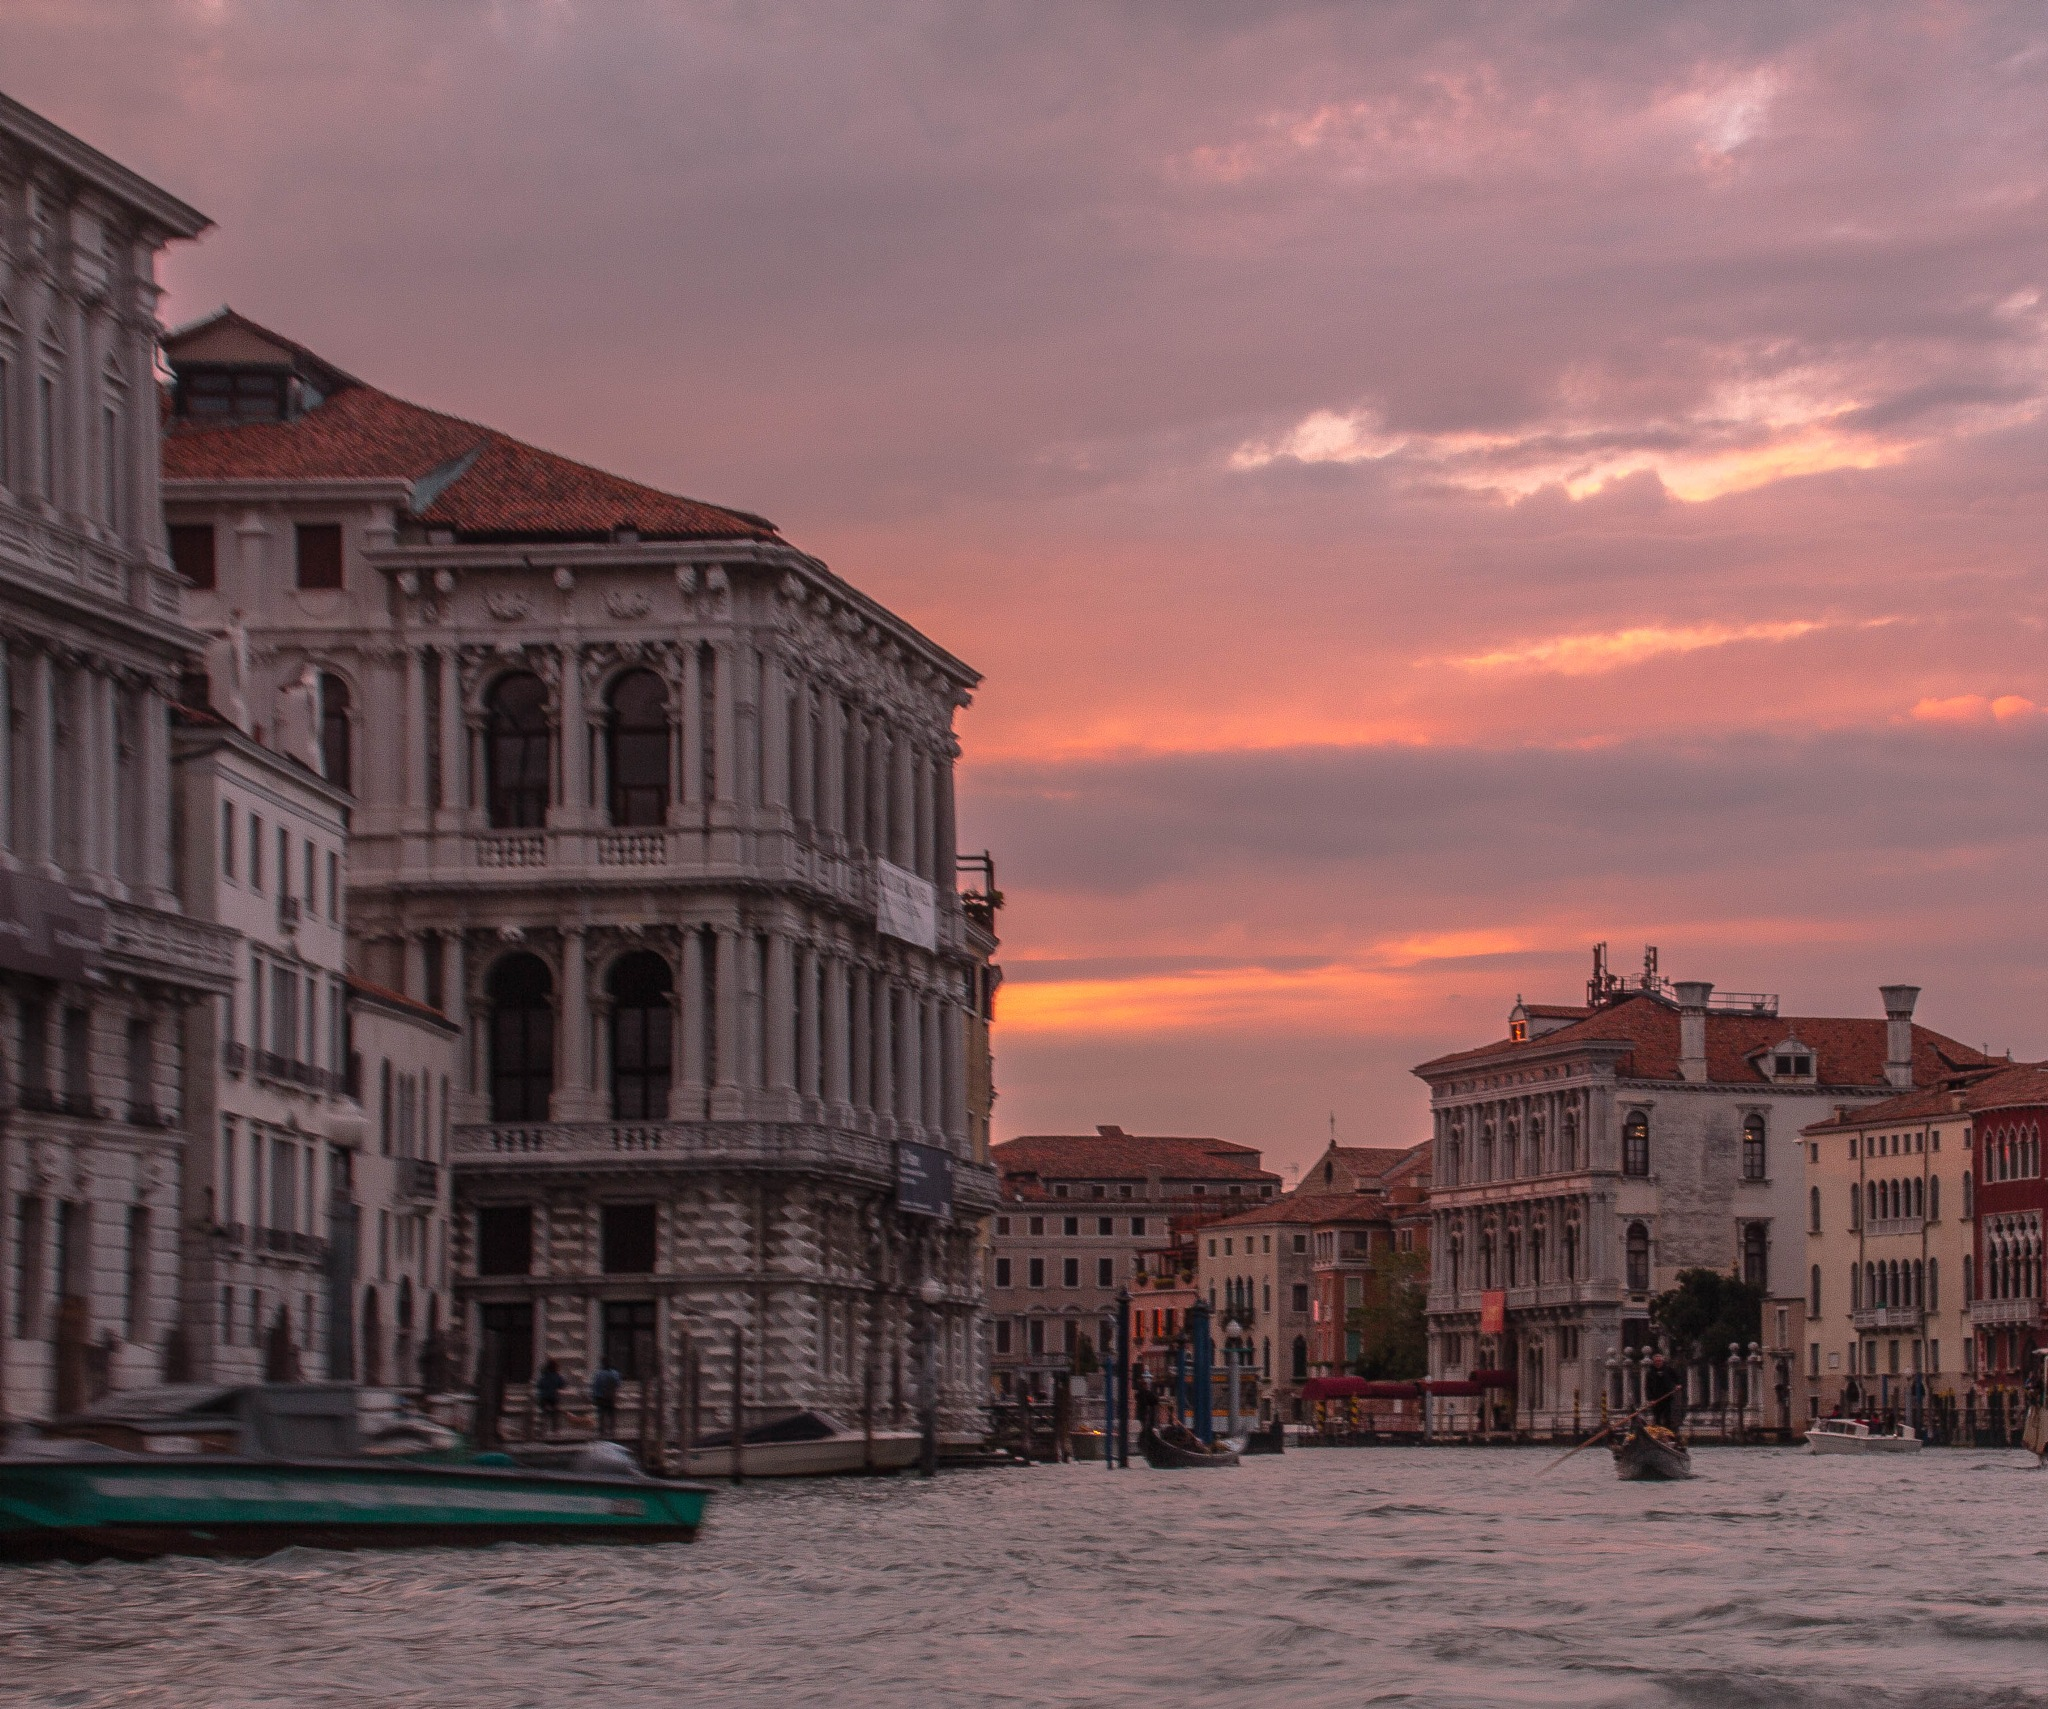 A Peaceful Sunset In Venice by Peter Cavaliere